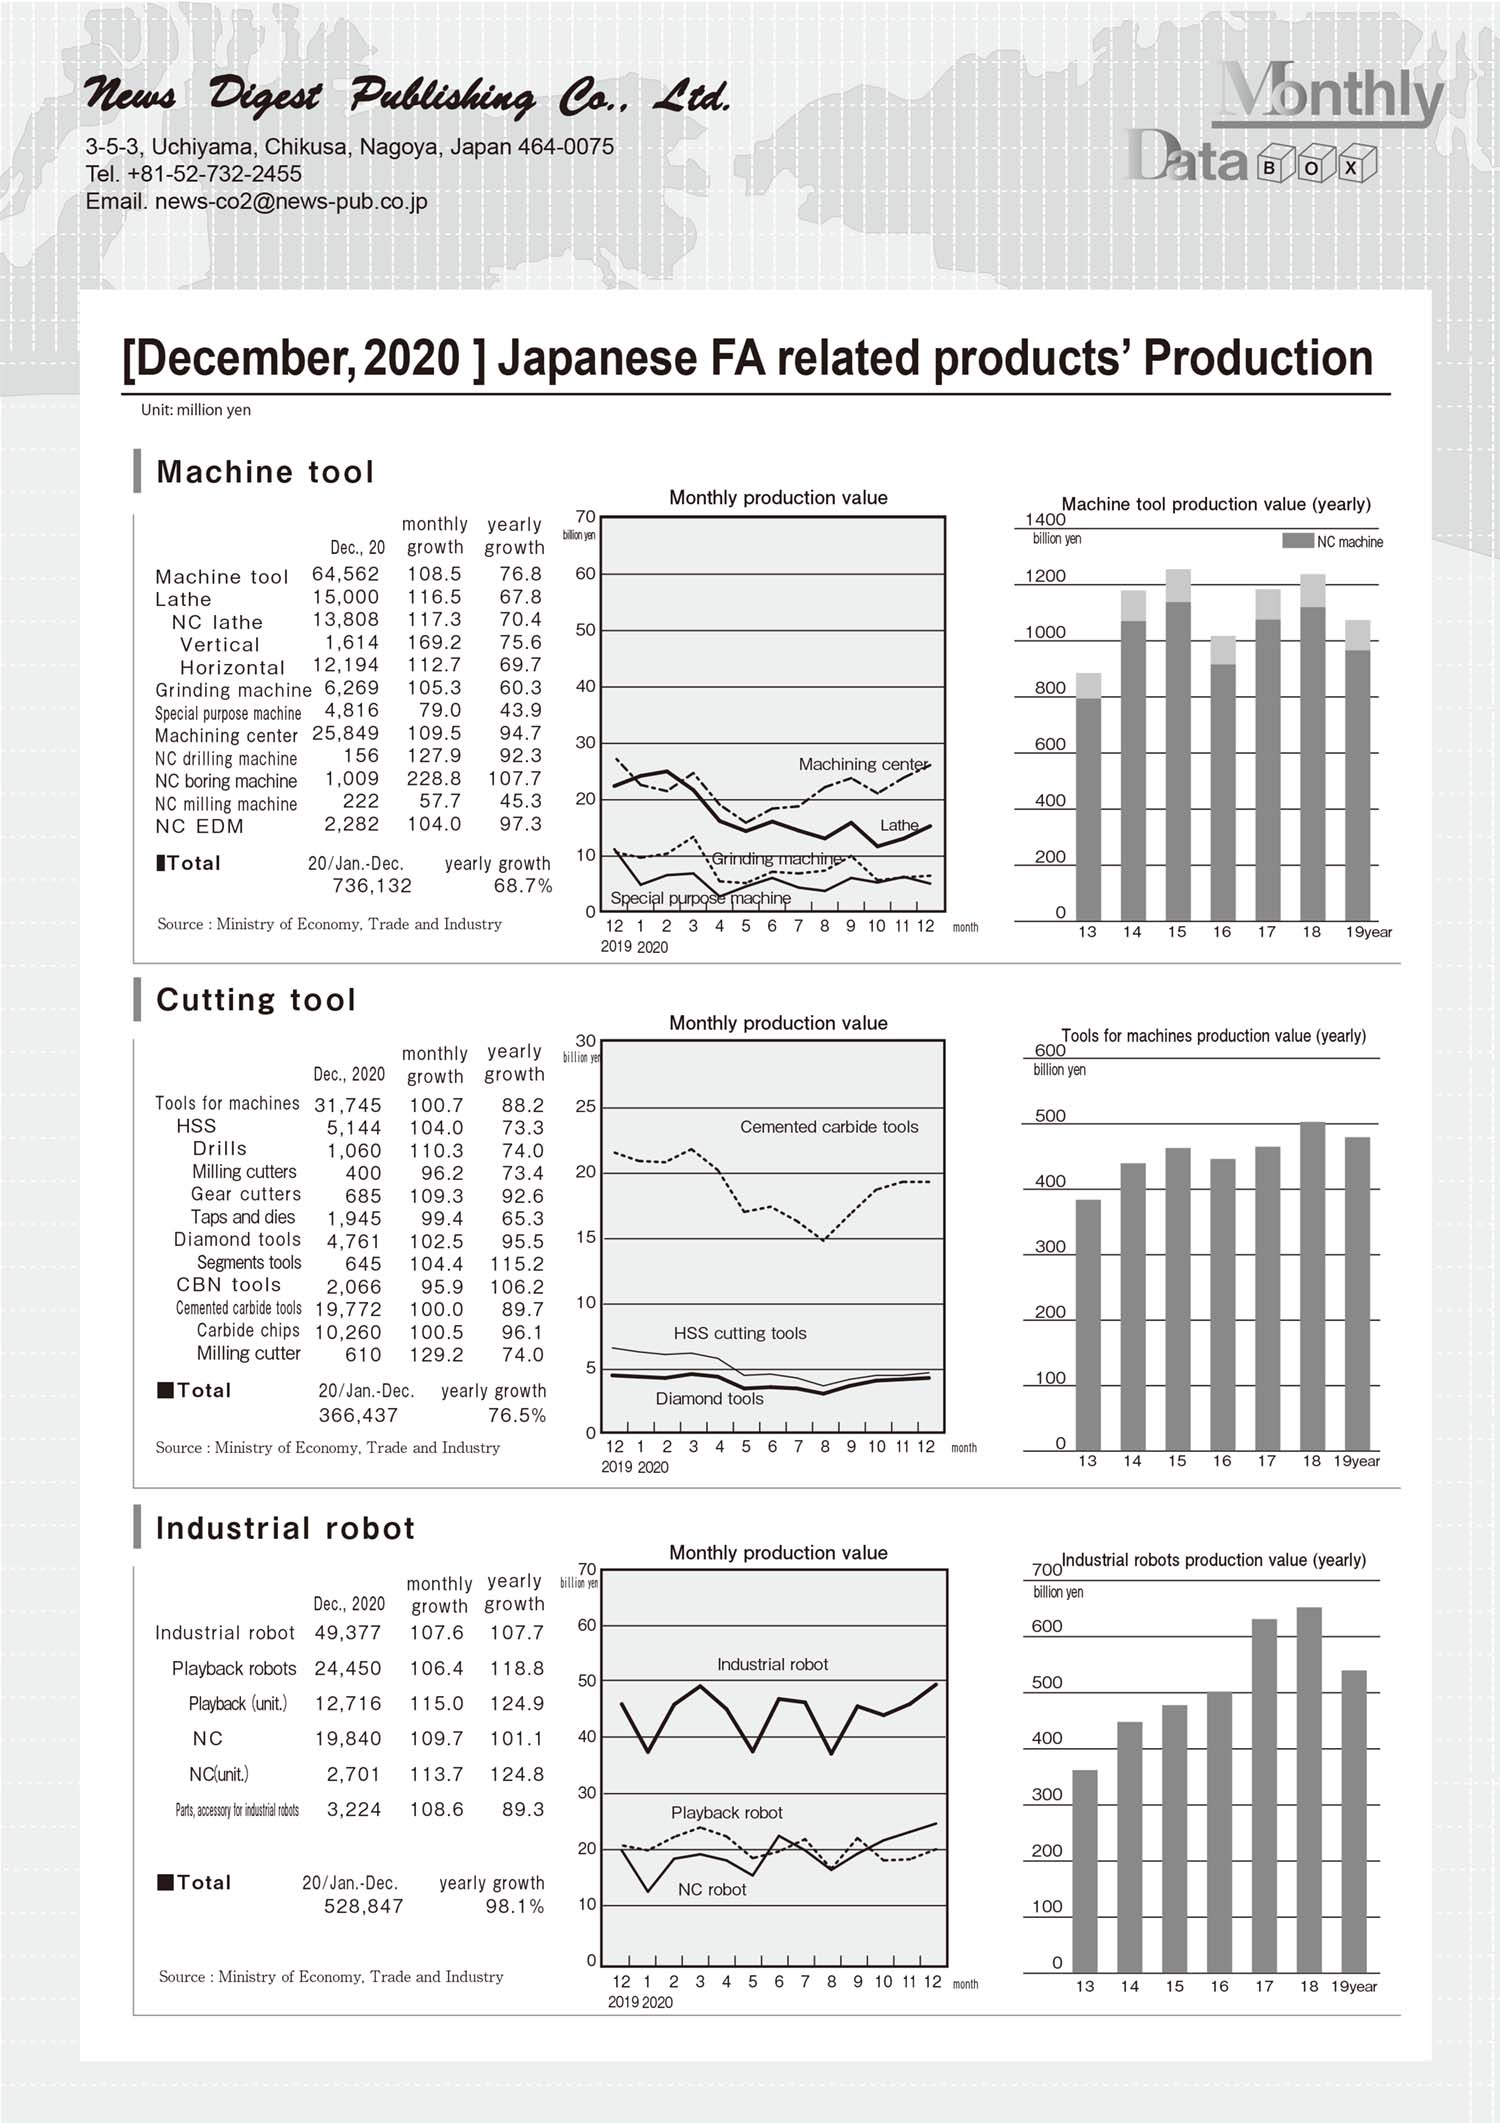 [December, 2020 ] Japanese FA related products' Production